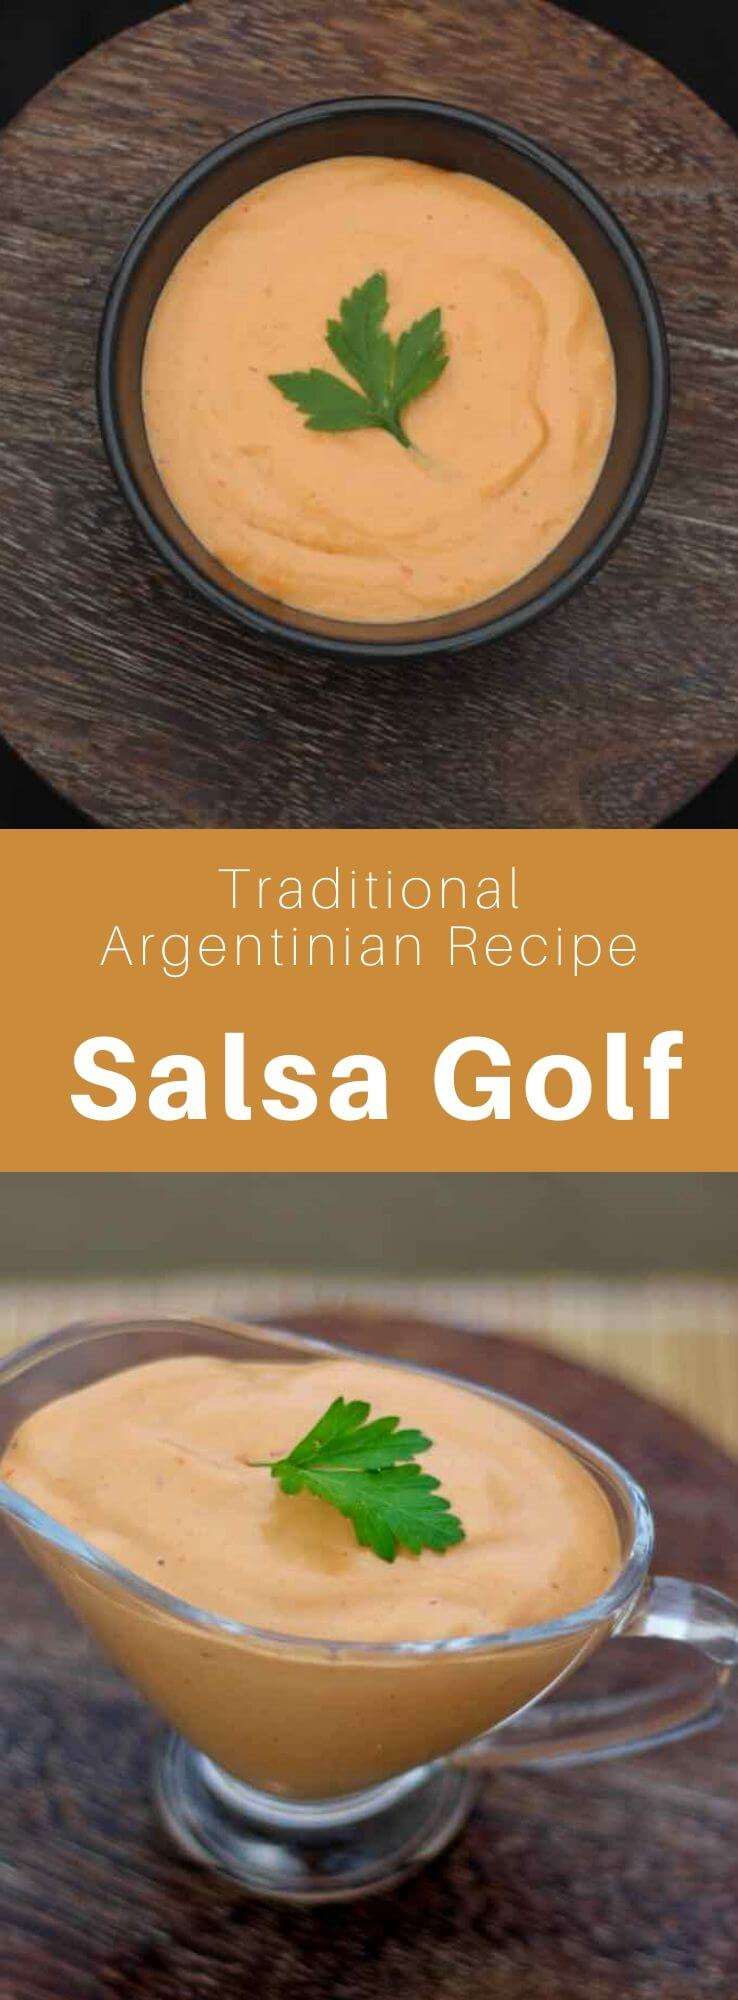 Salsa golf is an emblematic sauce of Argentine cuisine mainly composed of mayonnaise and ketchup, that can be spicy or not. #Argentina #ArgentinianRecipe #ArgentinianFood #ArgentinianCuisine #WorldCuisine #196flavors